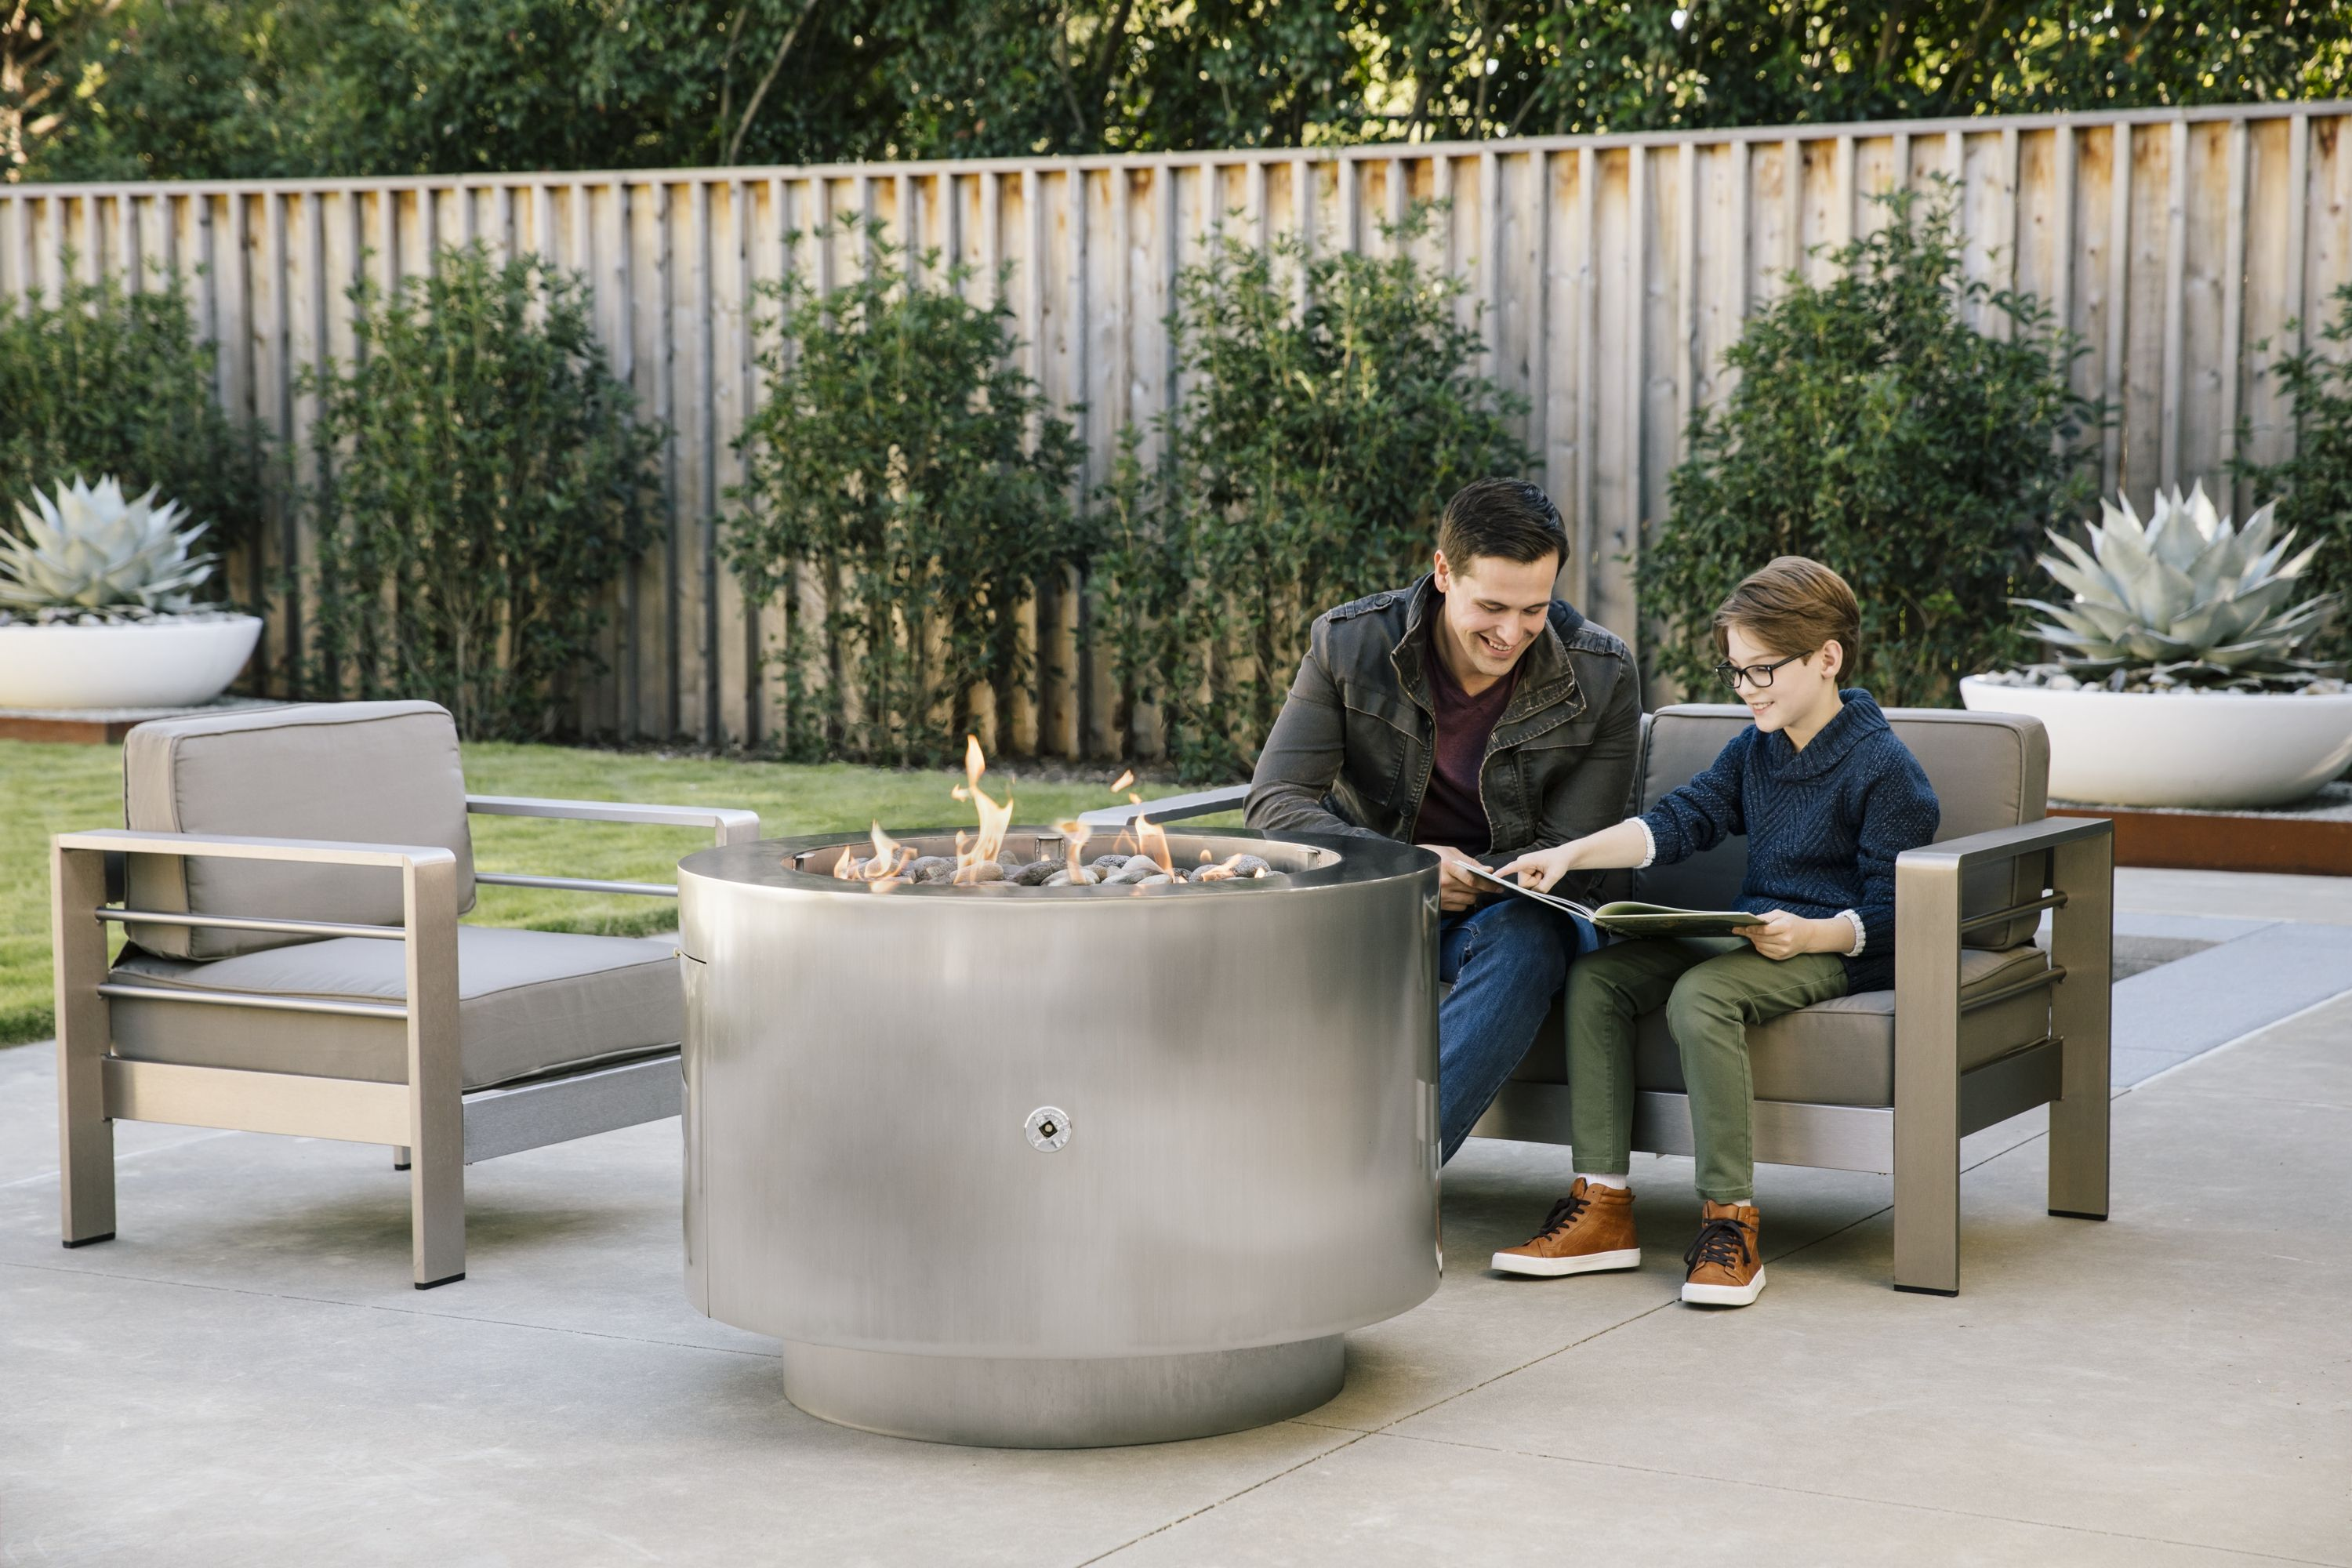 38 Inch Round Stainless Steel Fire Pit Natural Gas Or Remote